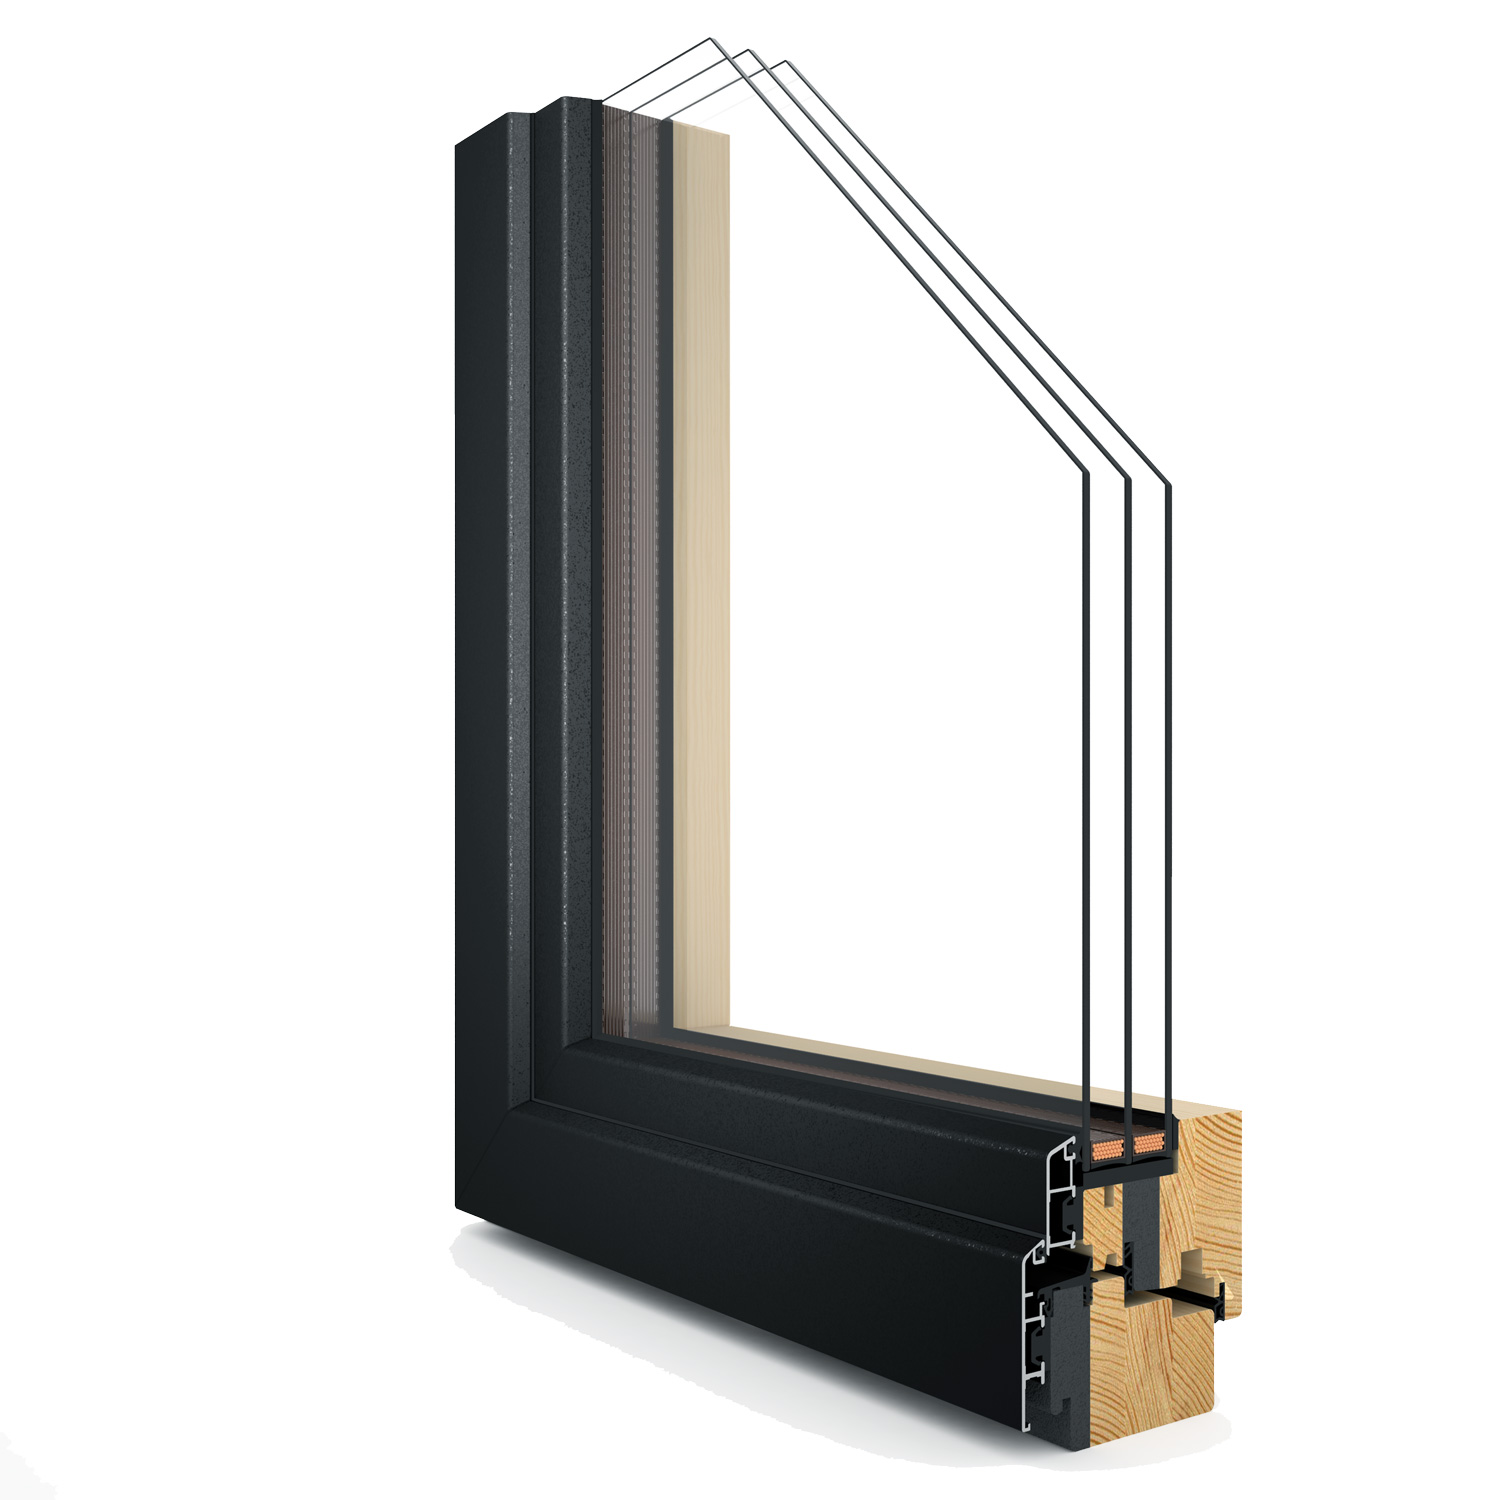 R-8 Zola ThermoPlus Clad™ window rendering